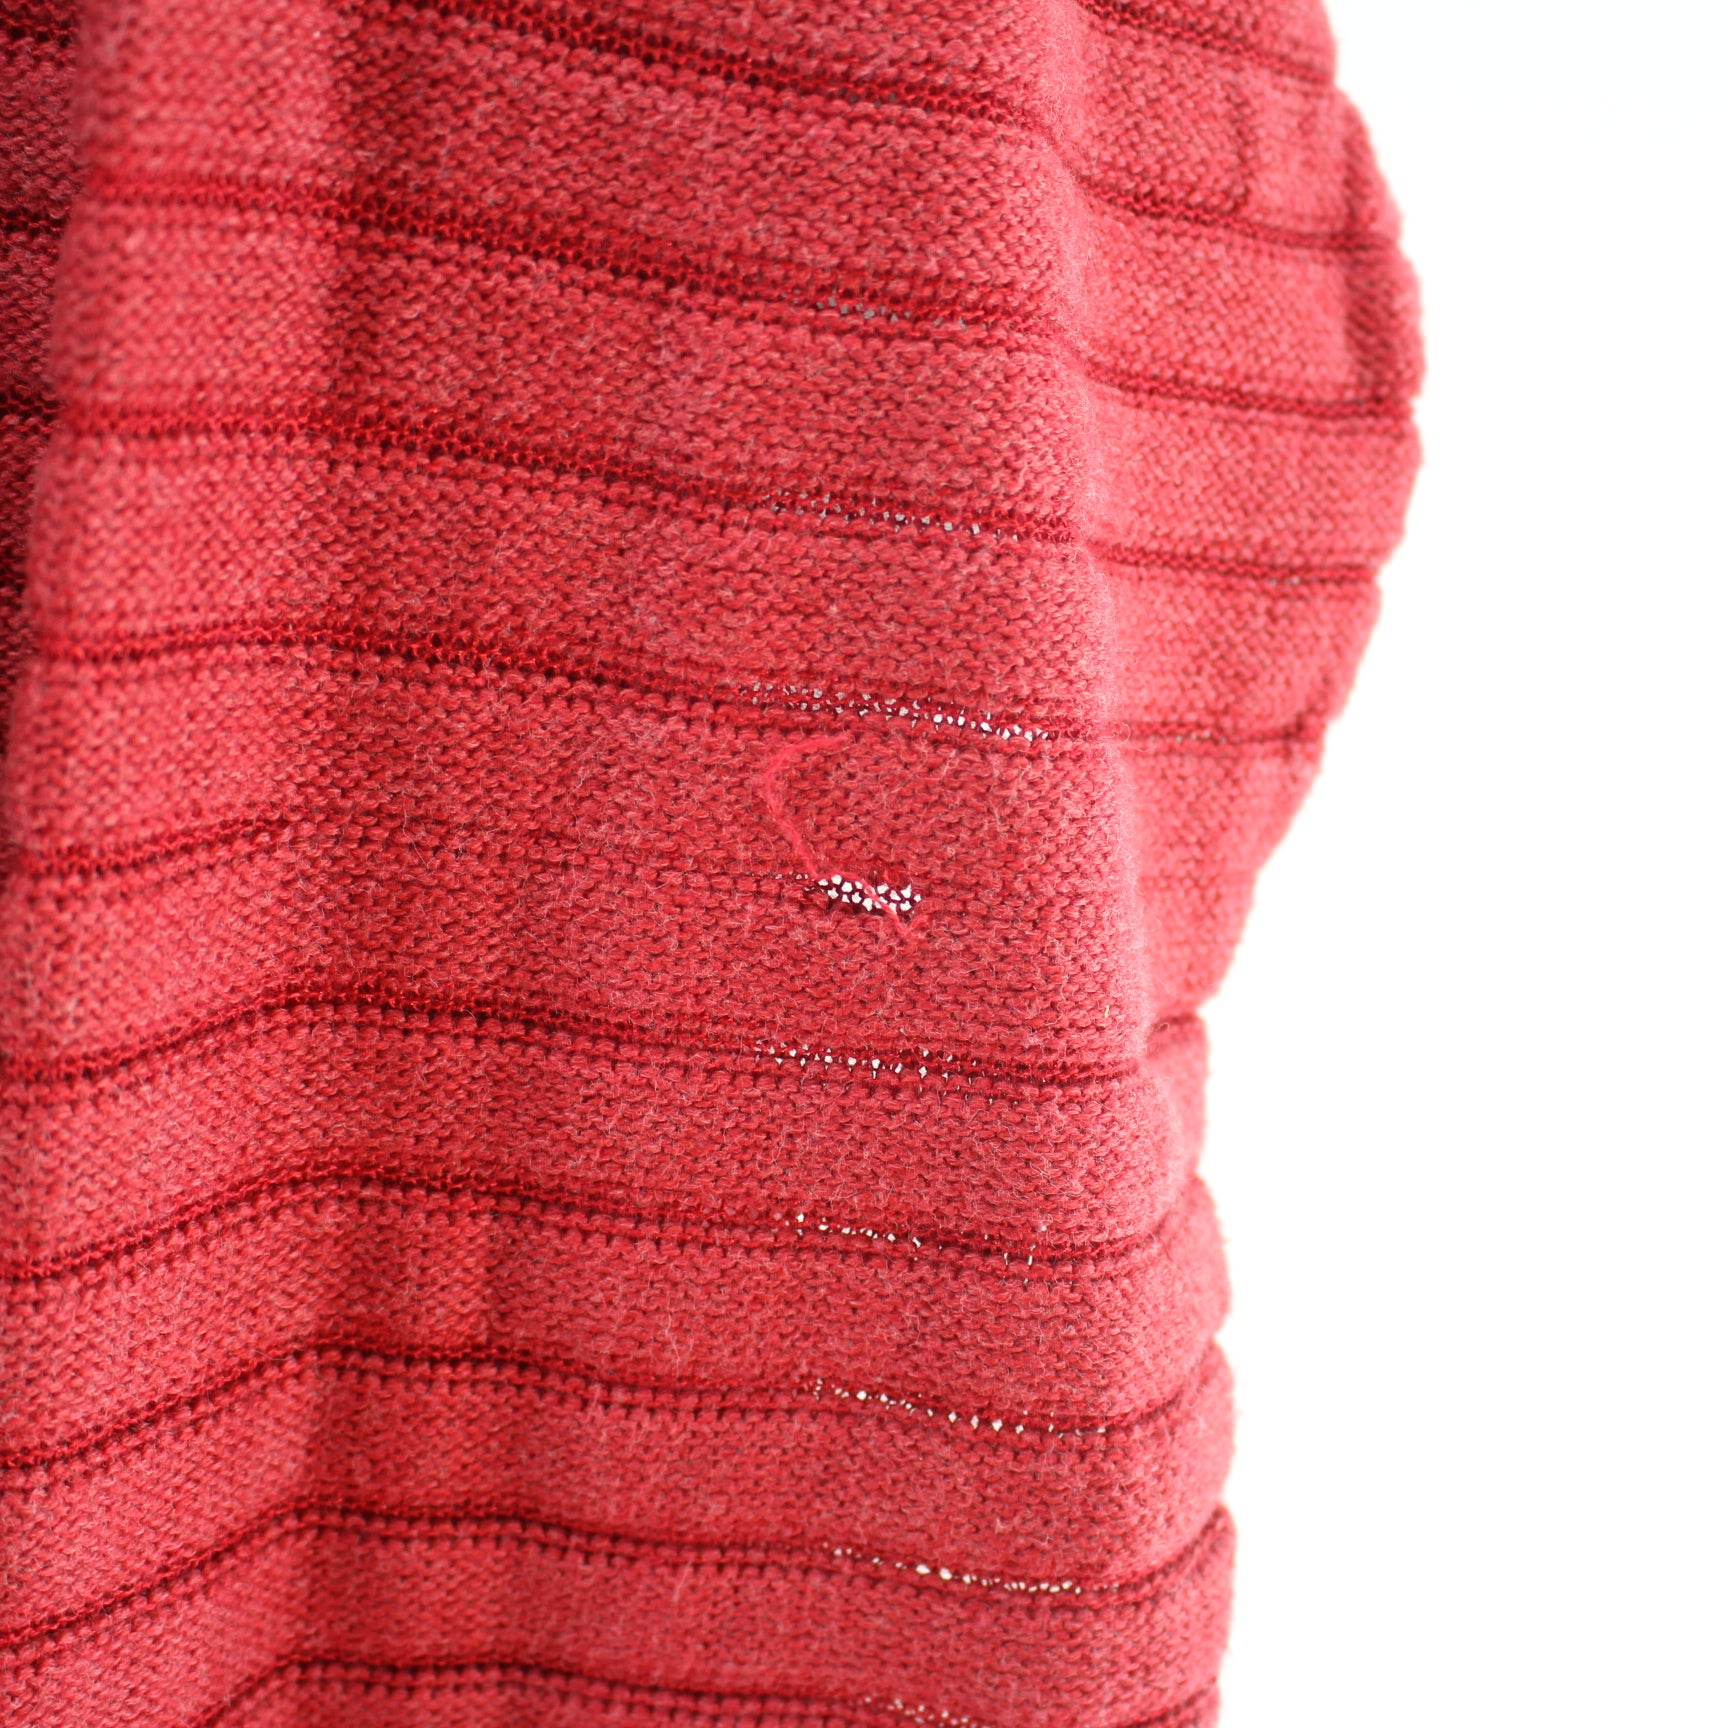 df18fc7e1 Lacoste Women s Sweater Size L 44 in Red Crew Neck Striped Long Sleeve